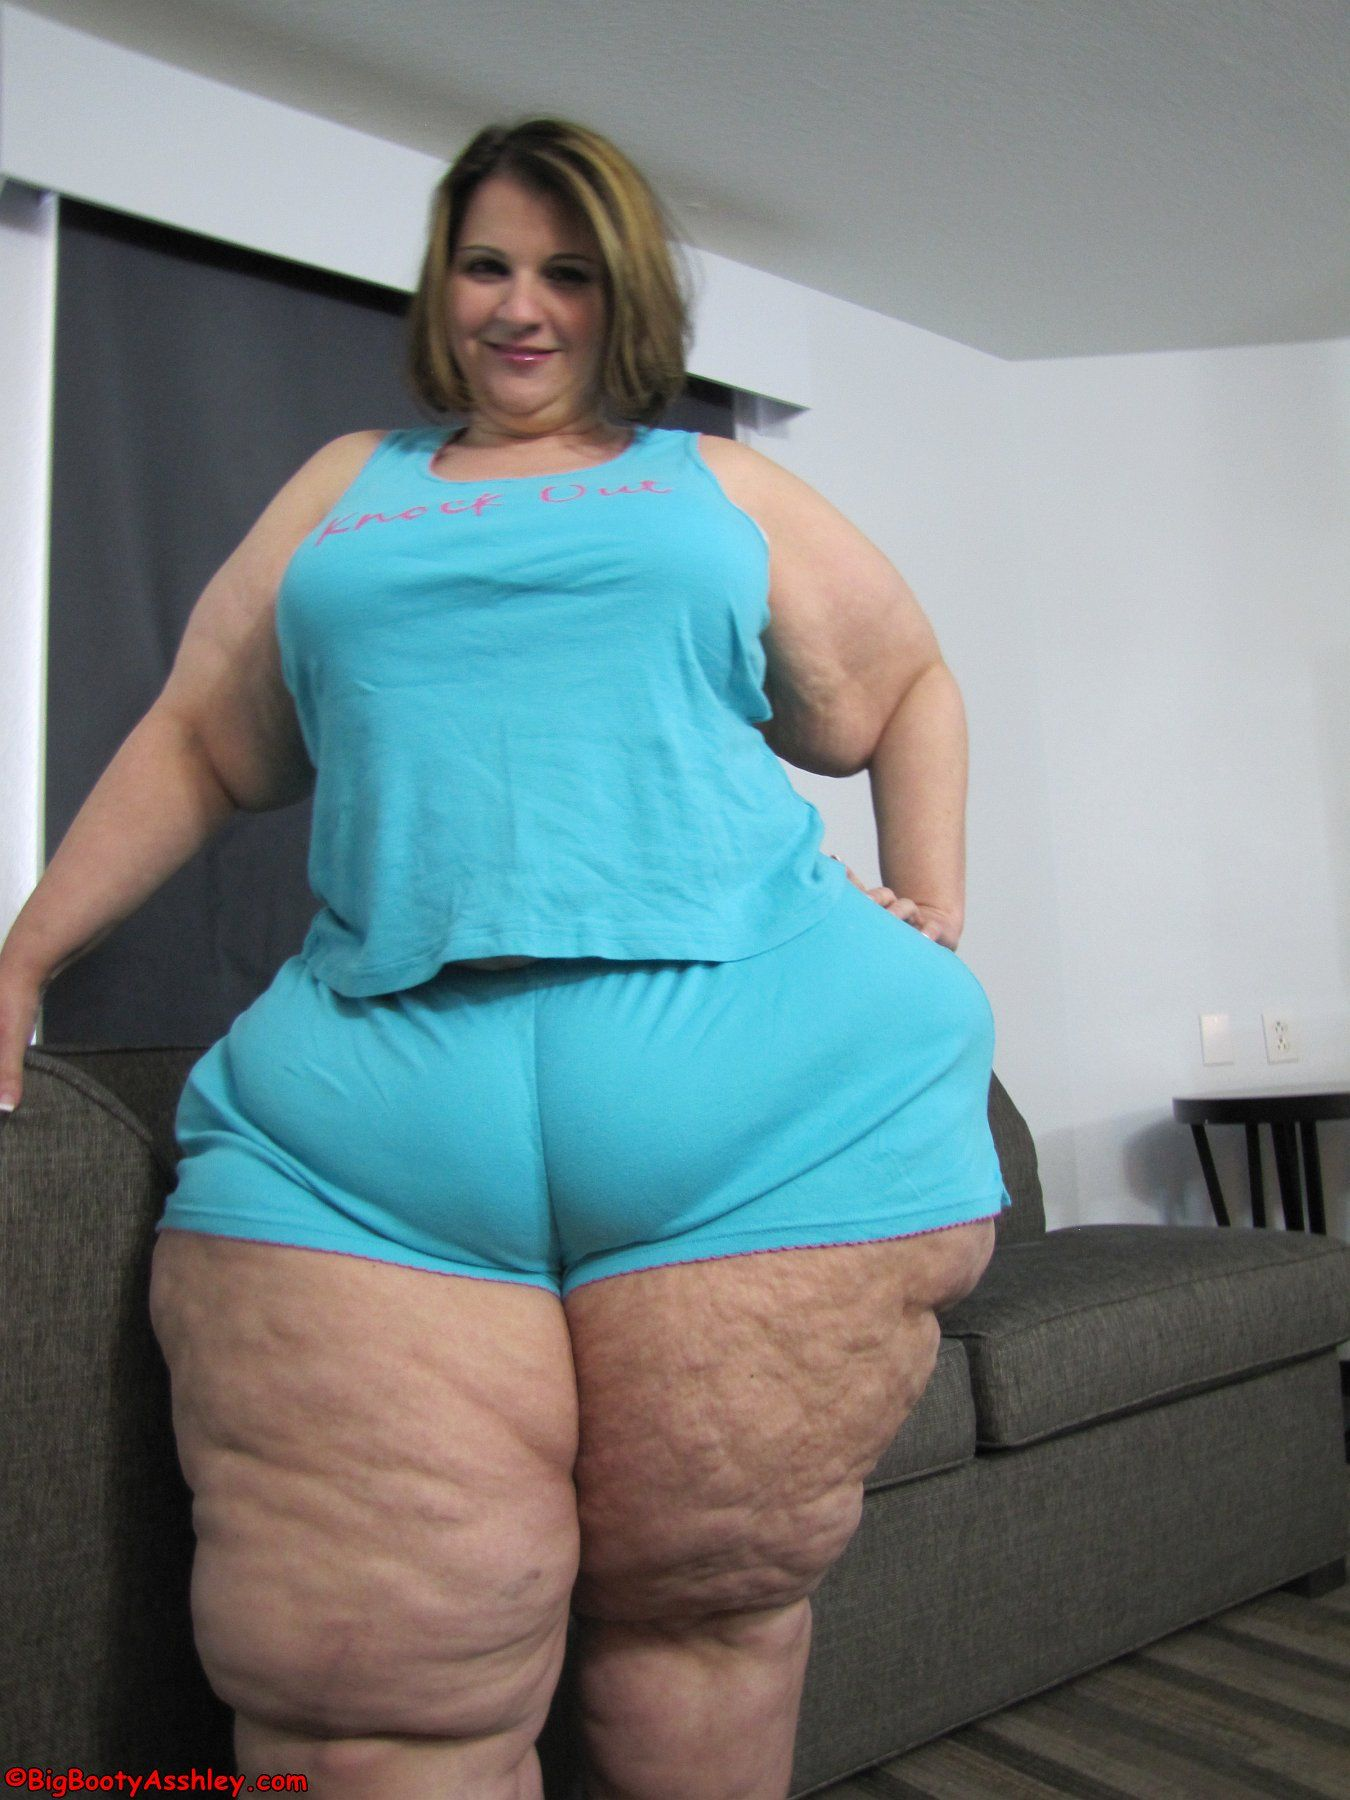 Asshley Looking Fine  Ashley  Pinterest  Ssbbw, Curvy -9300